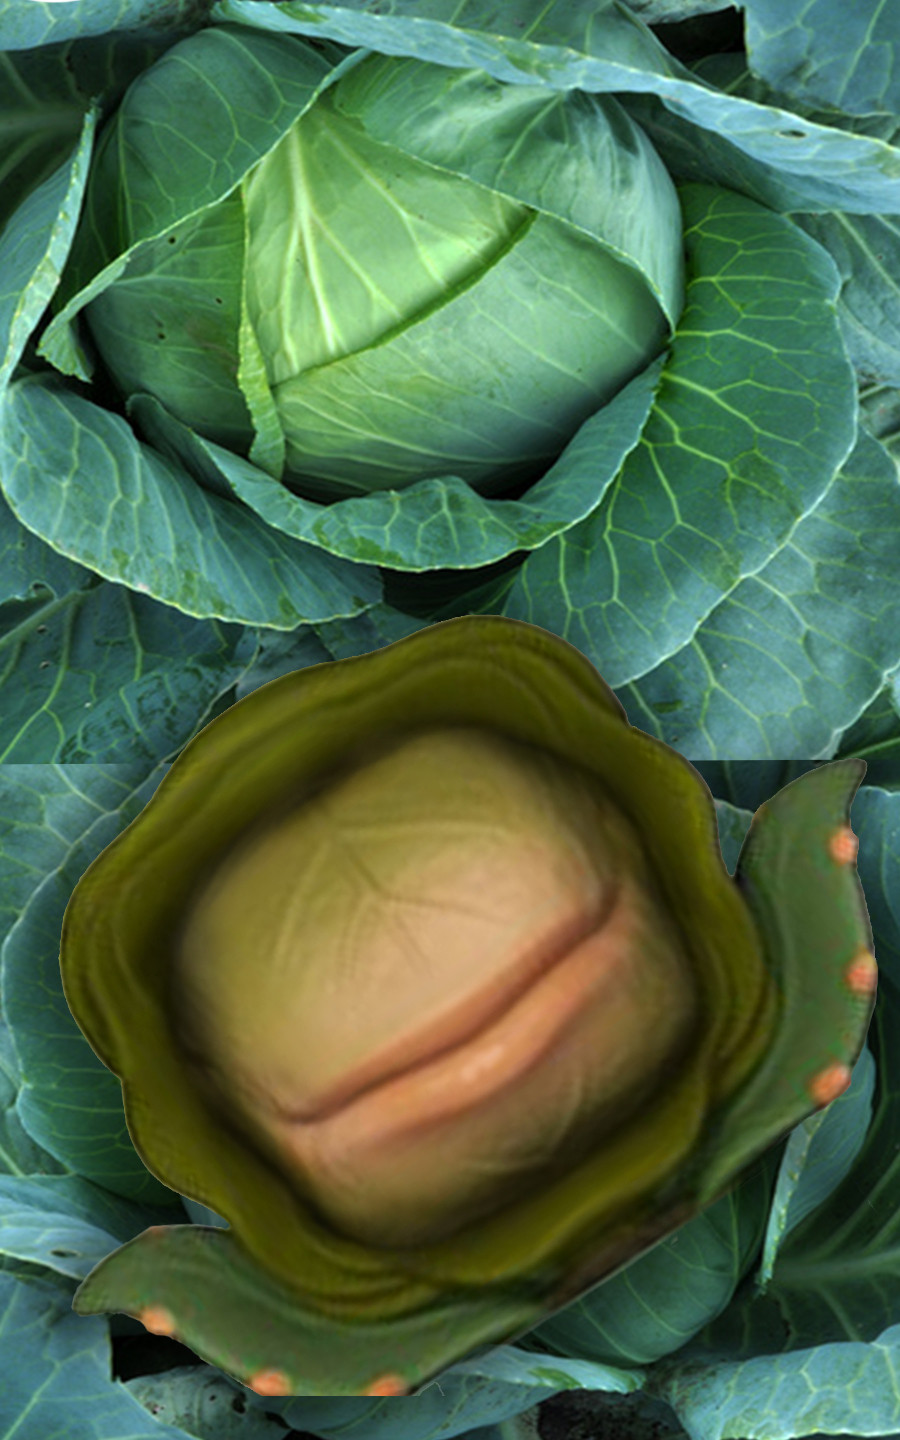 Side-by-side images of a head of cabbage and Audrey 2 from Little Shop of Horrors. They look identical.